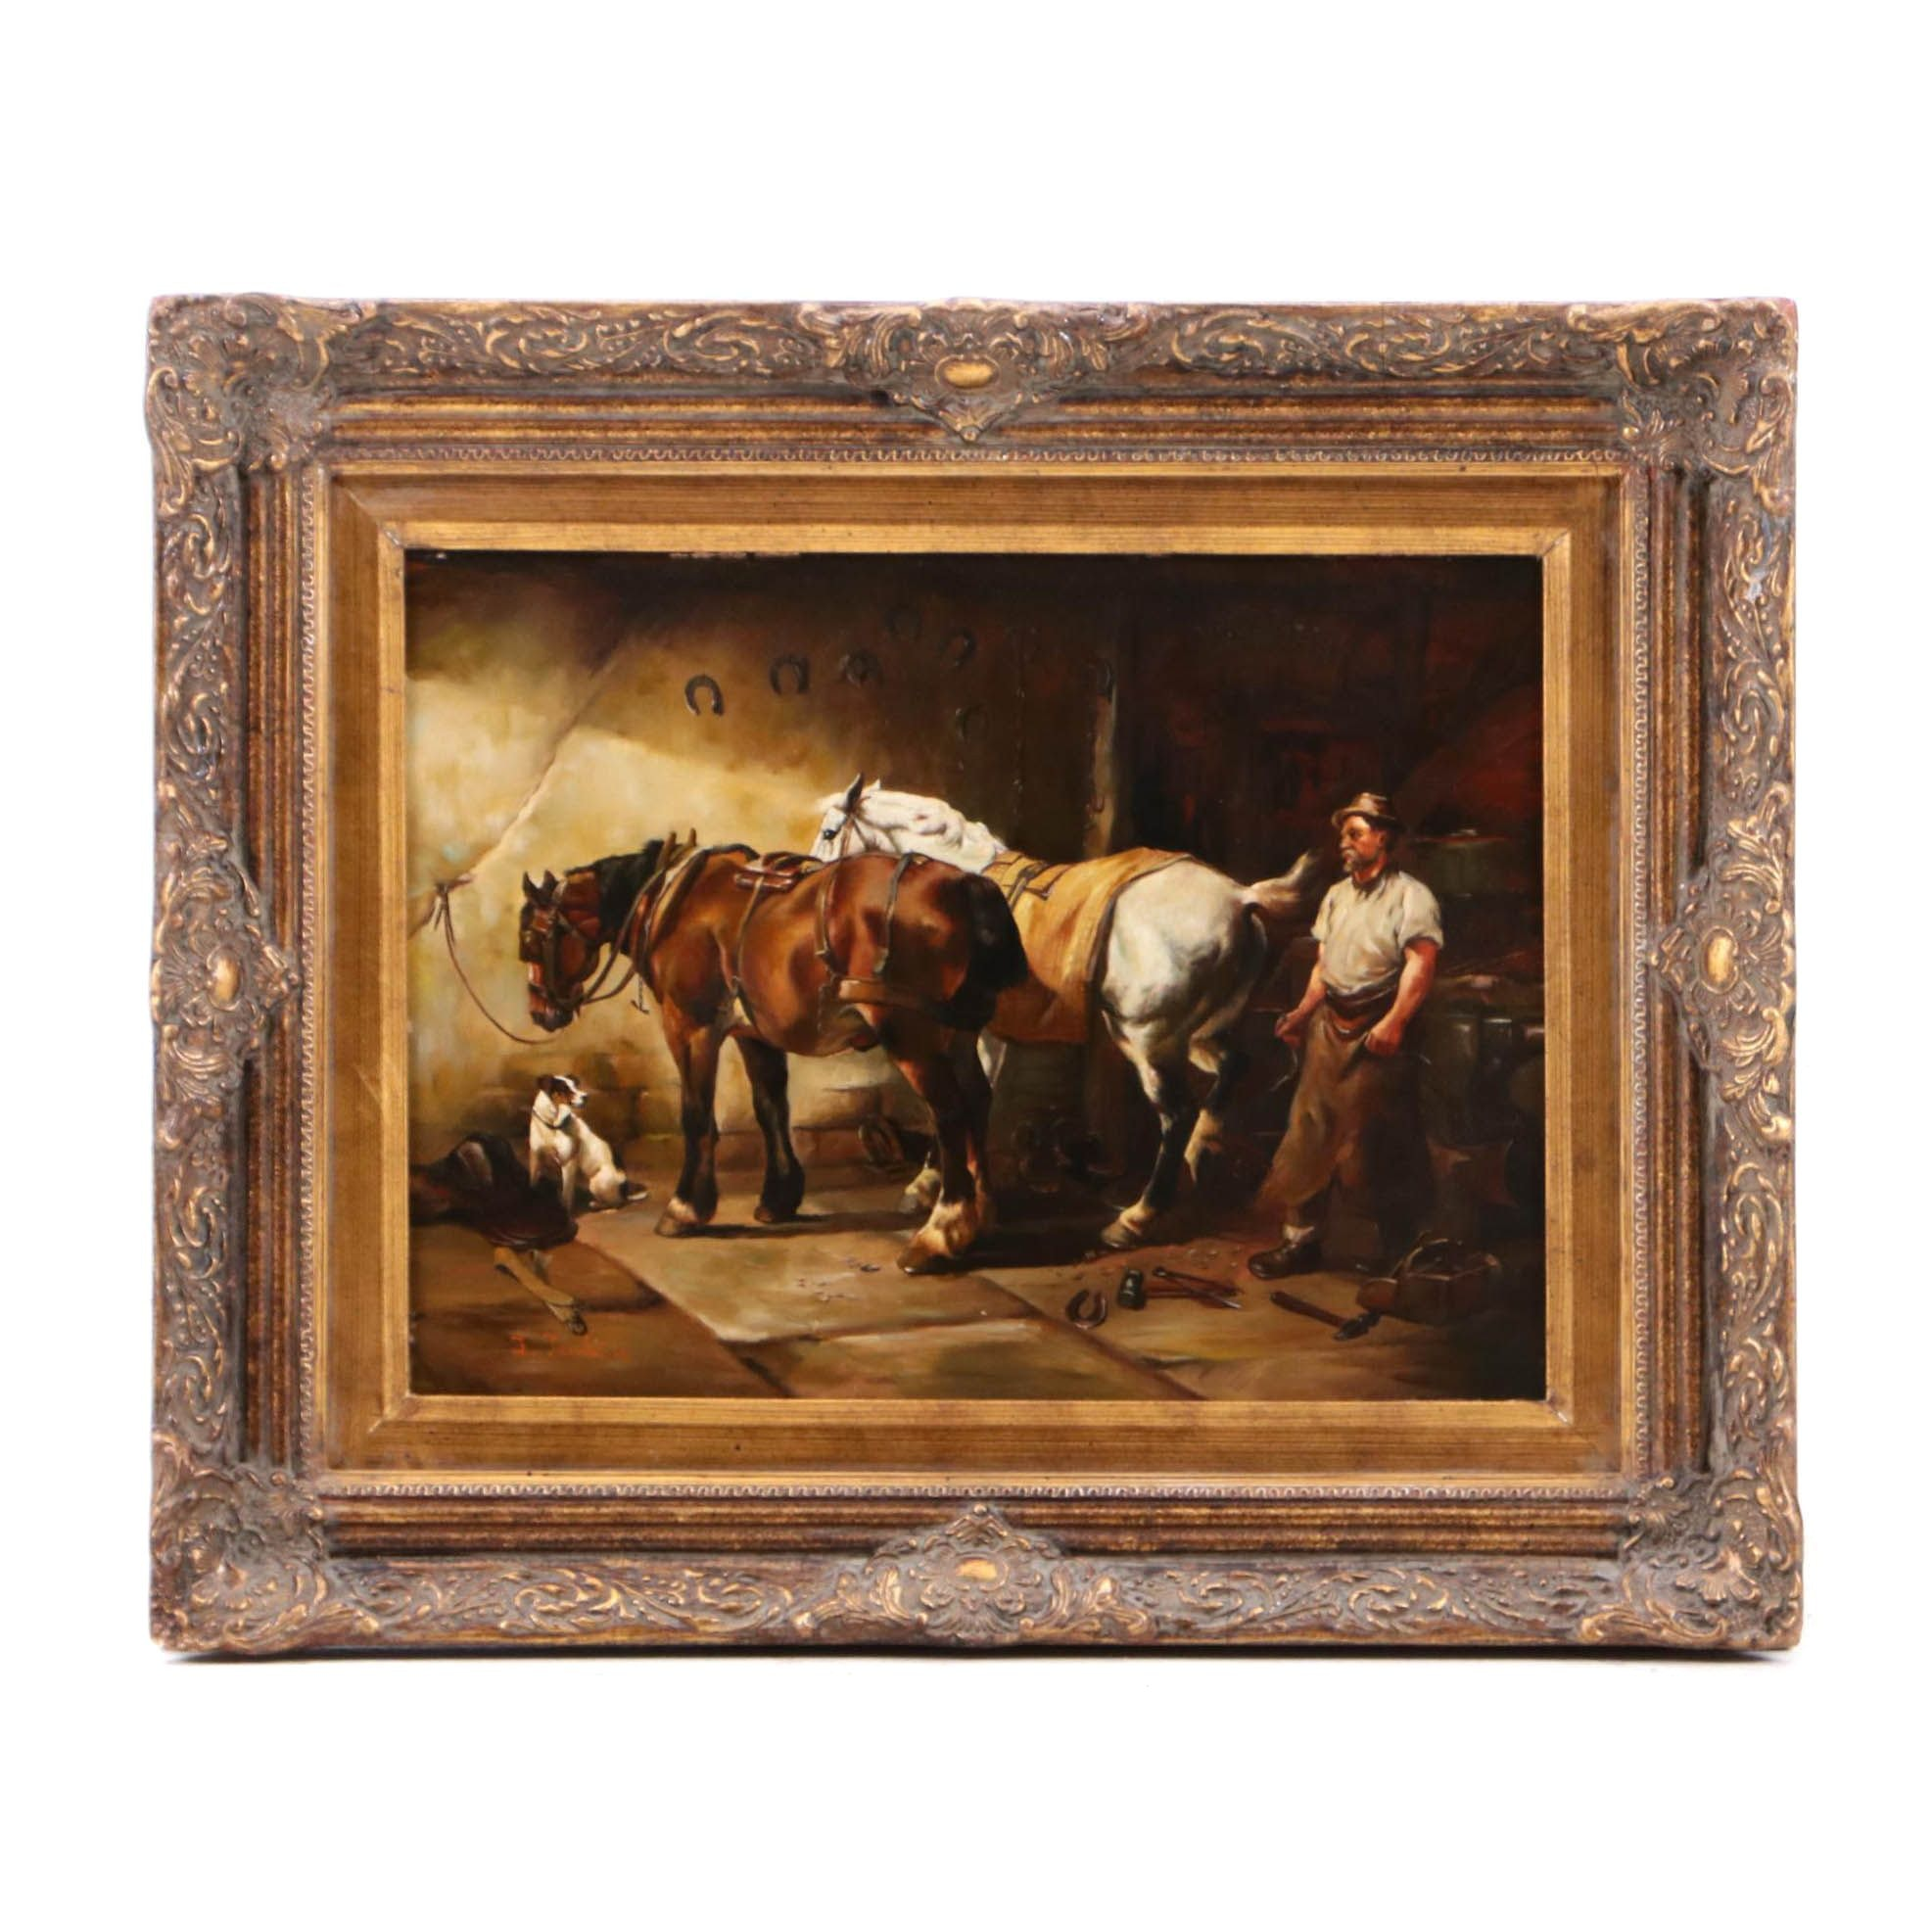 L. Jenkins Oil Painting of Blacksmith and Horses